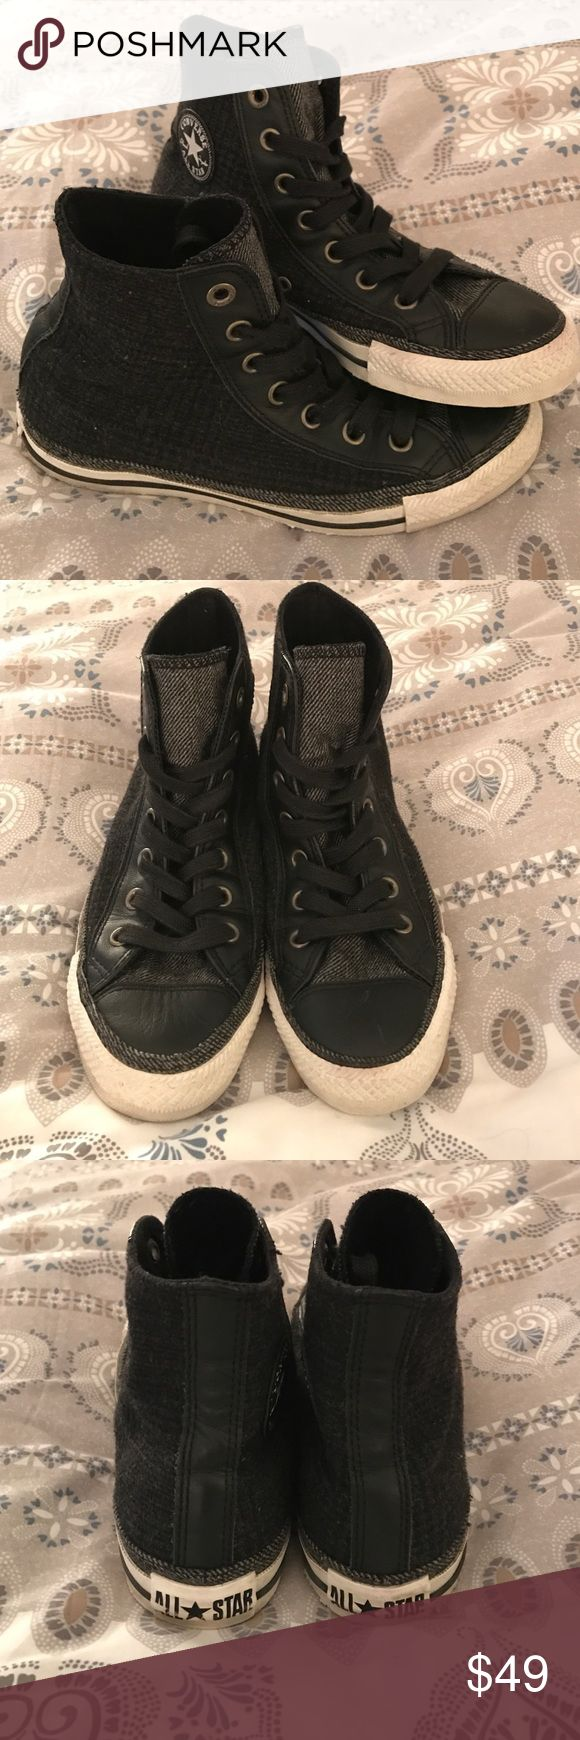 1 HOUR SALE Sweater Material Converse High Tops These converse are great for the winter because instead of being canvas they are a nice soft warm material. The soles and bottom are clean, and the shoes themselves have minor flaws from wear. No trades. Converse Shoes Sneakers